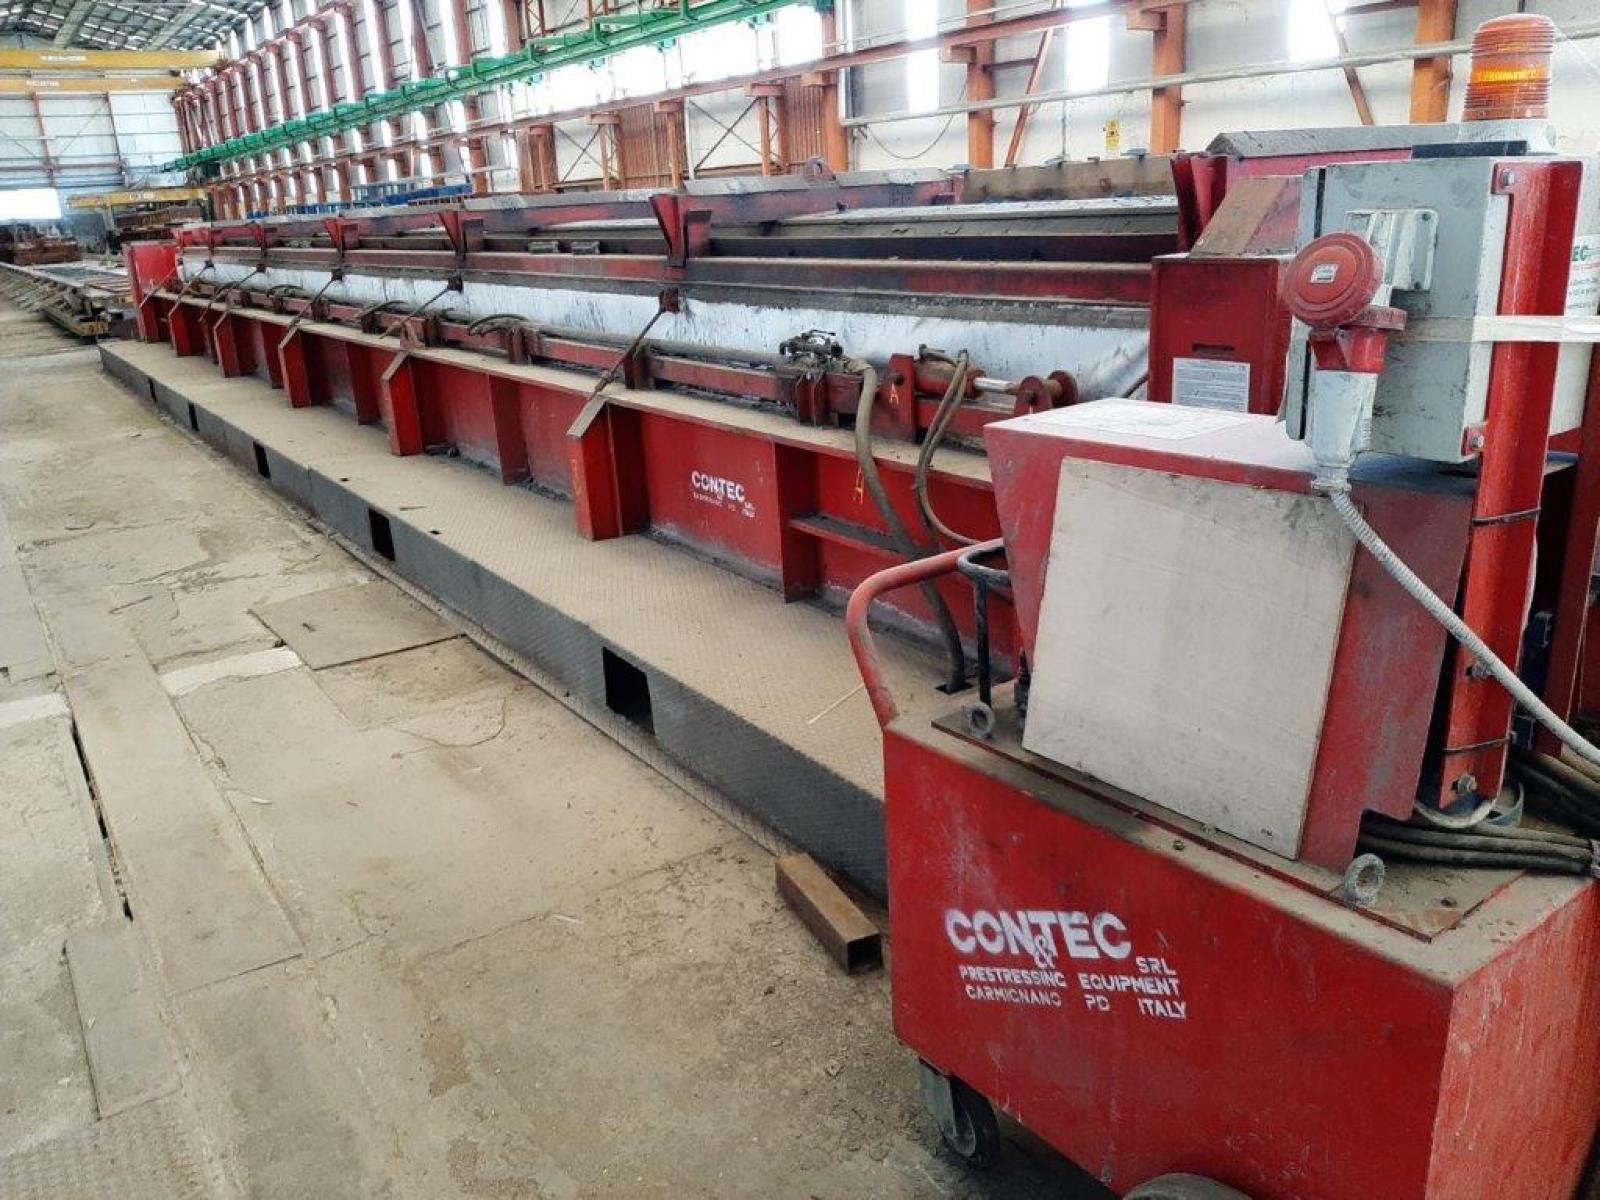 Contec  Cassero componibile 100/120/1457145+ fondelli e sep getto